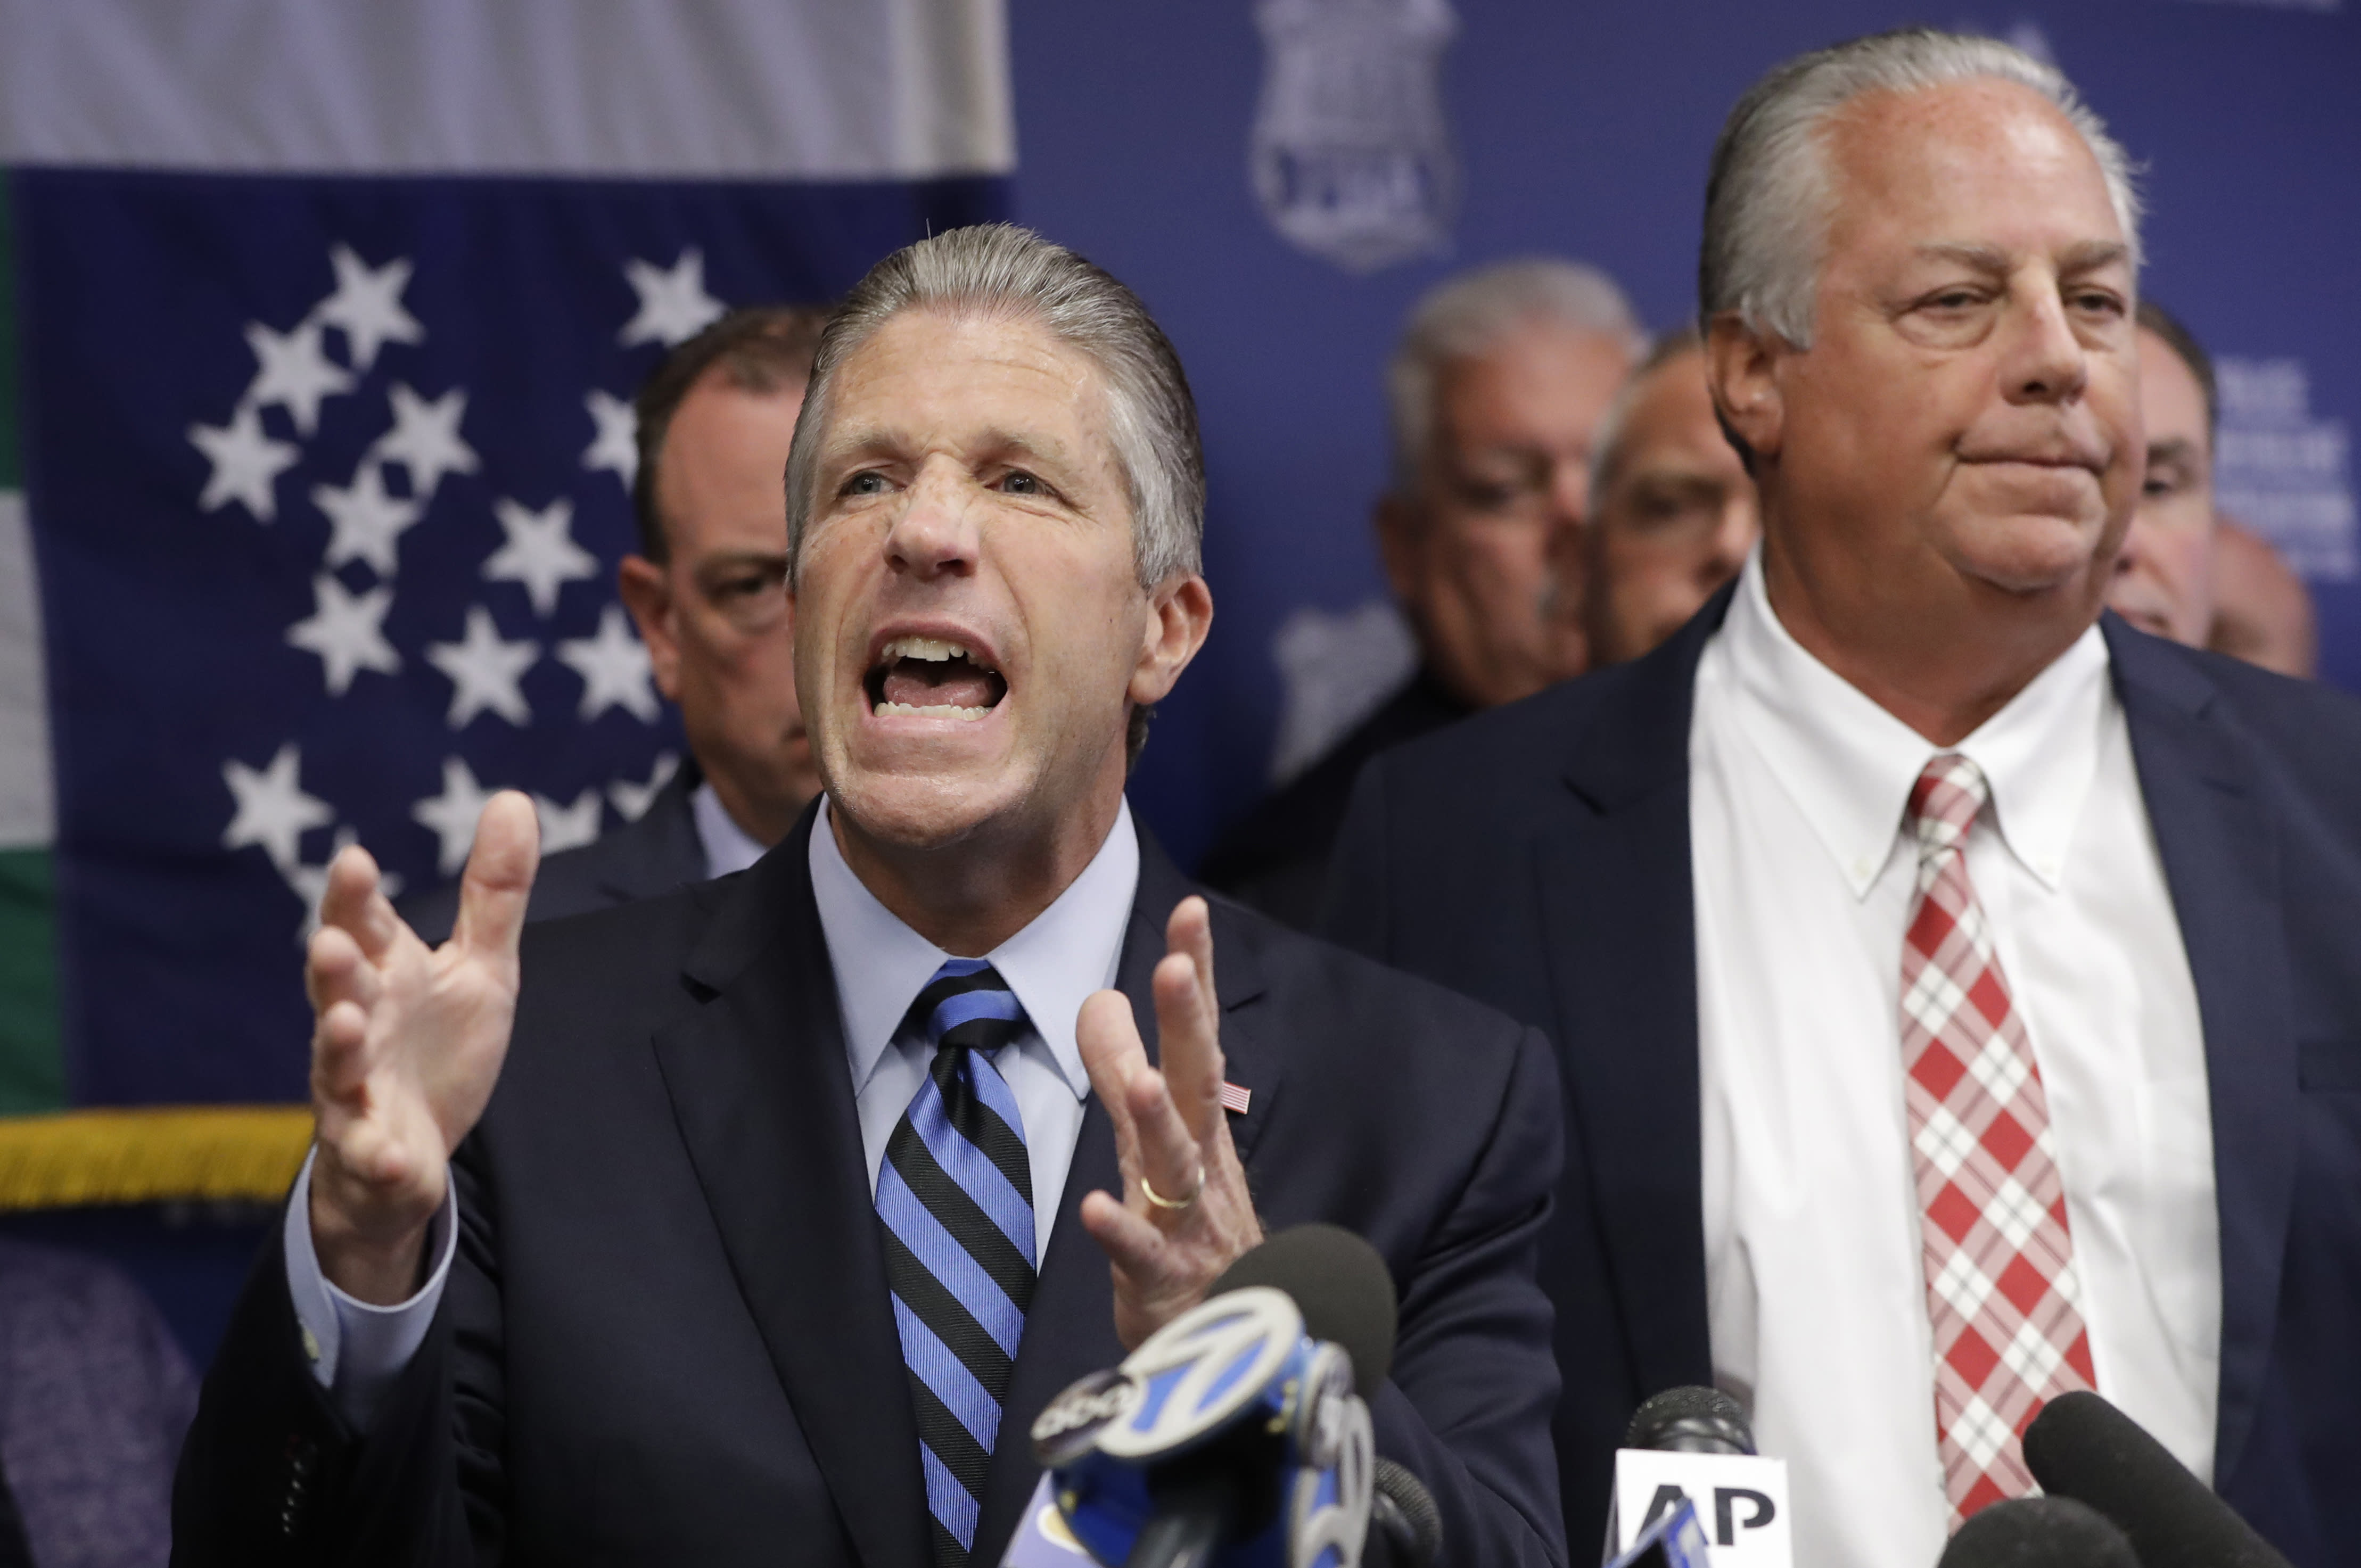 Police Benevolent Associaton President Patrick J. Lynch, left, speaks with NYPD officer Daniel Pantaleo's attorney Stuart London beside him, right, during a press conference at PBA headquarters following a decision to terminate Pantaleo, Monday, Aug. 19, 2019, in New York. Pantaleo was involved in the chokehold death of Eric Garner. T (AP Photo/Kathy Willens)